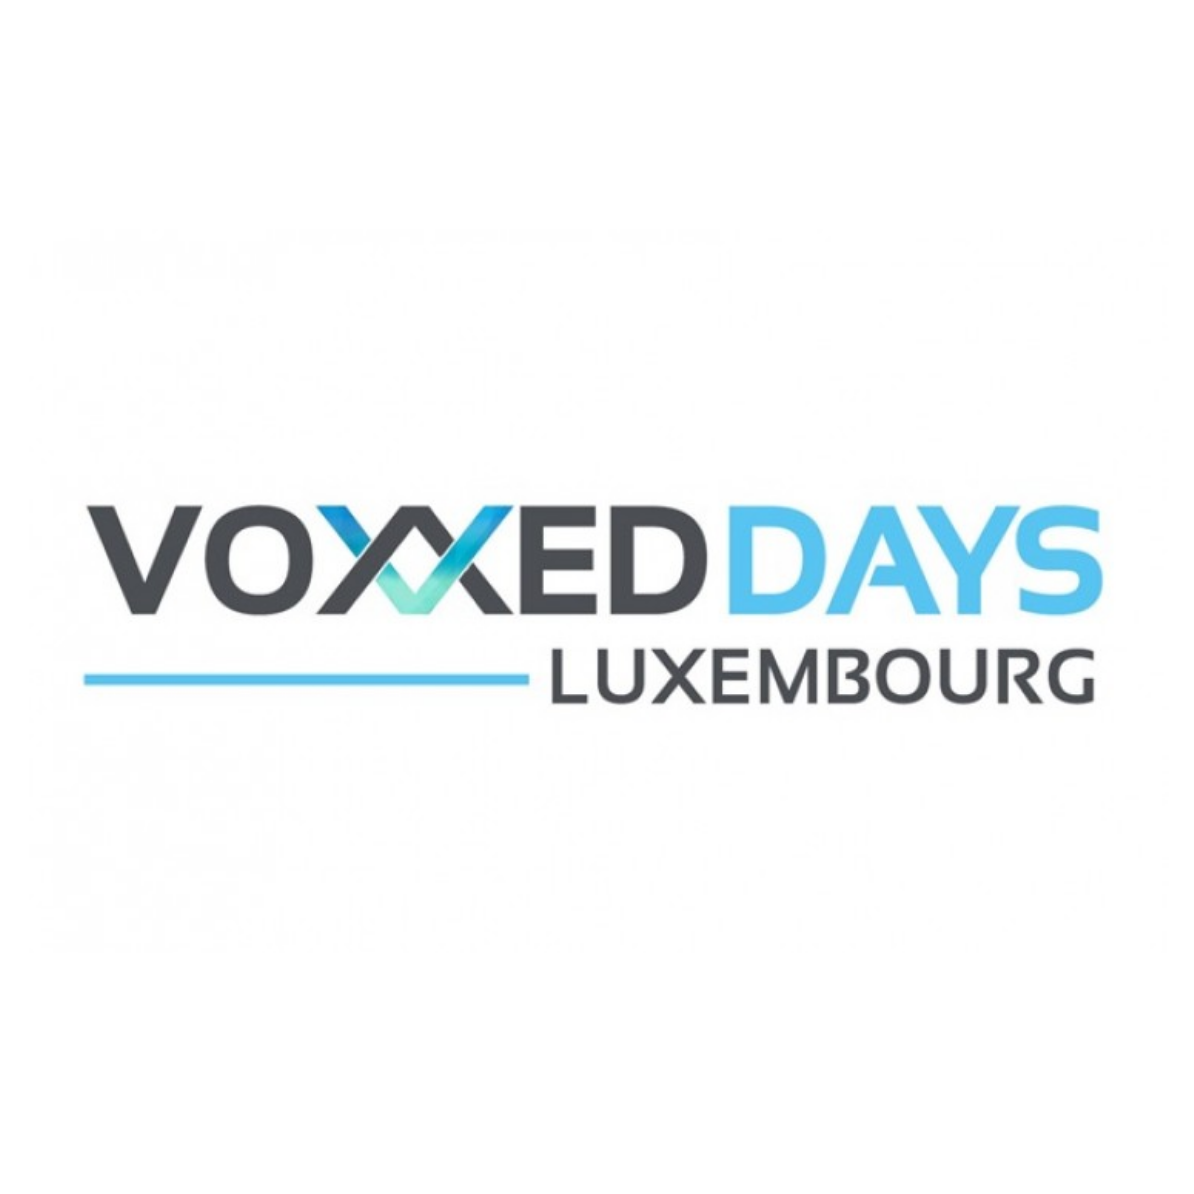 Voxxed Days Luxembourg 2019 logo